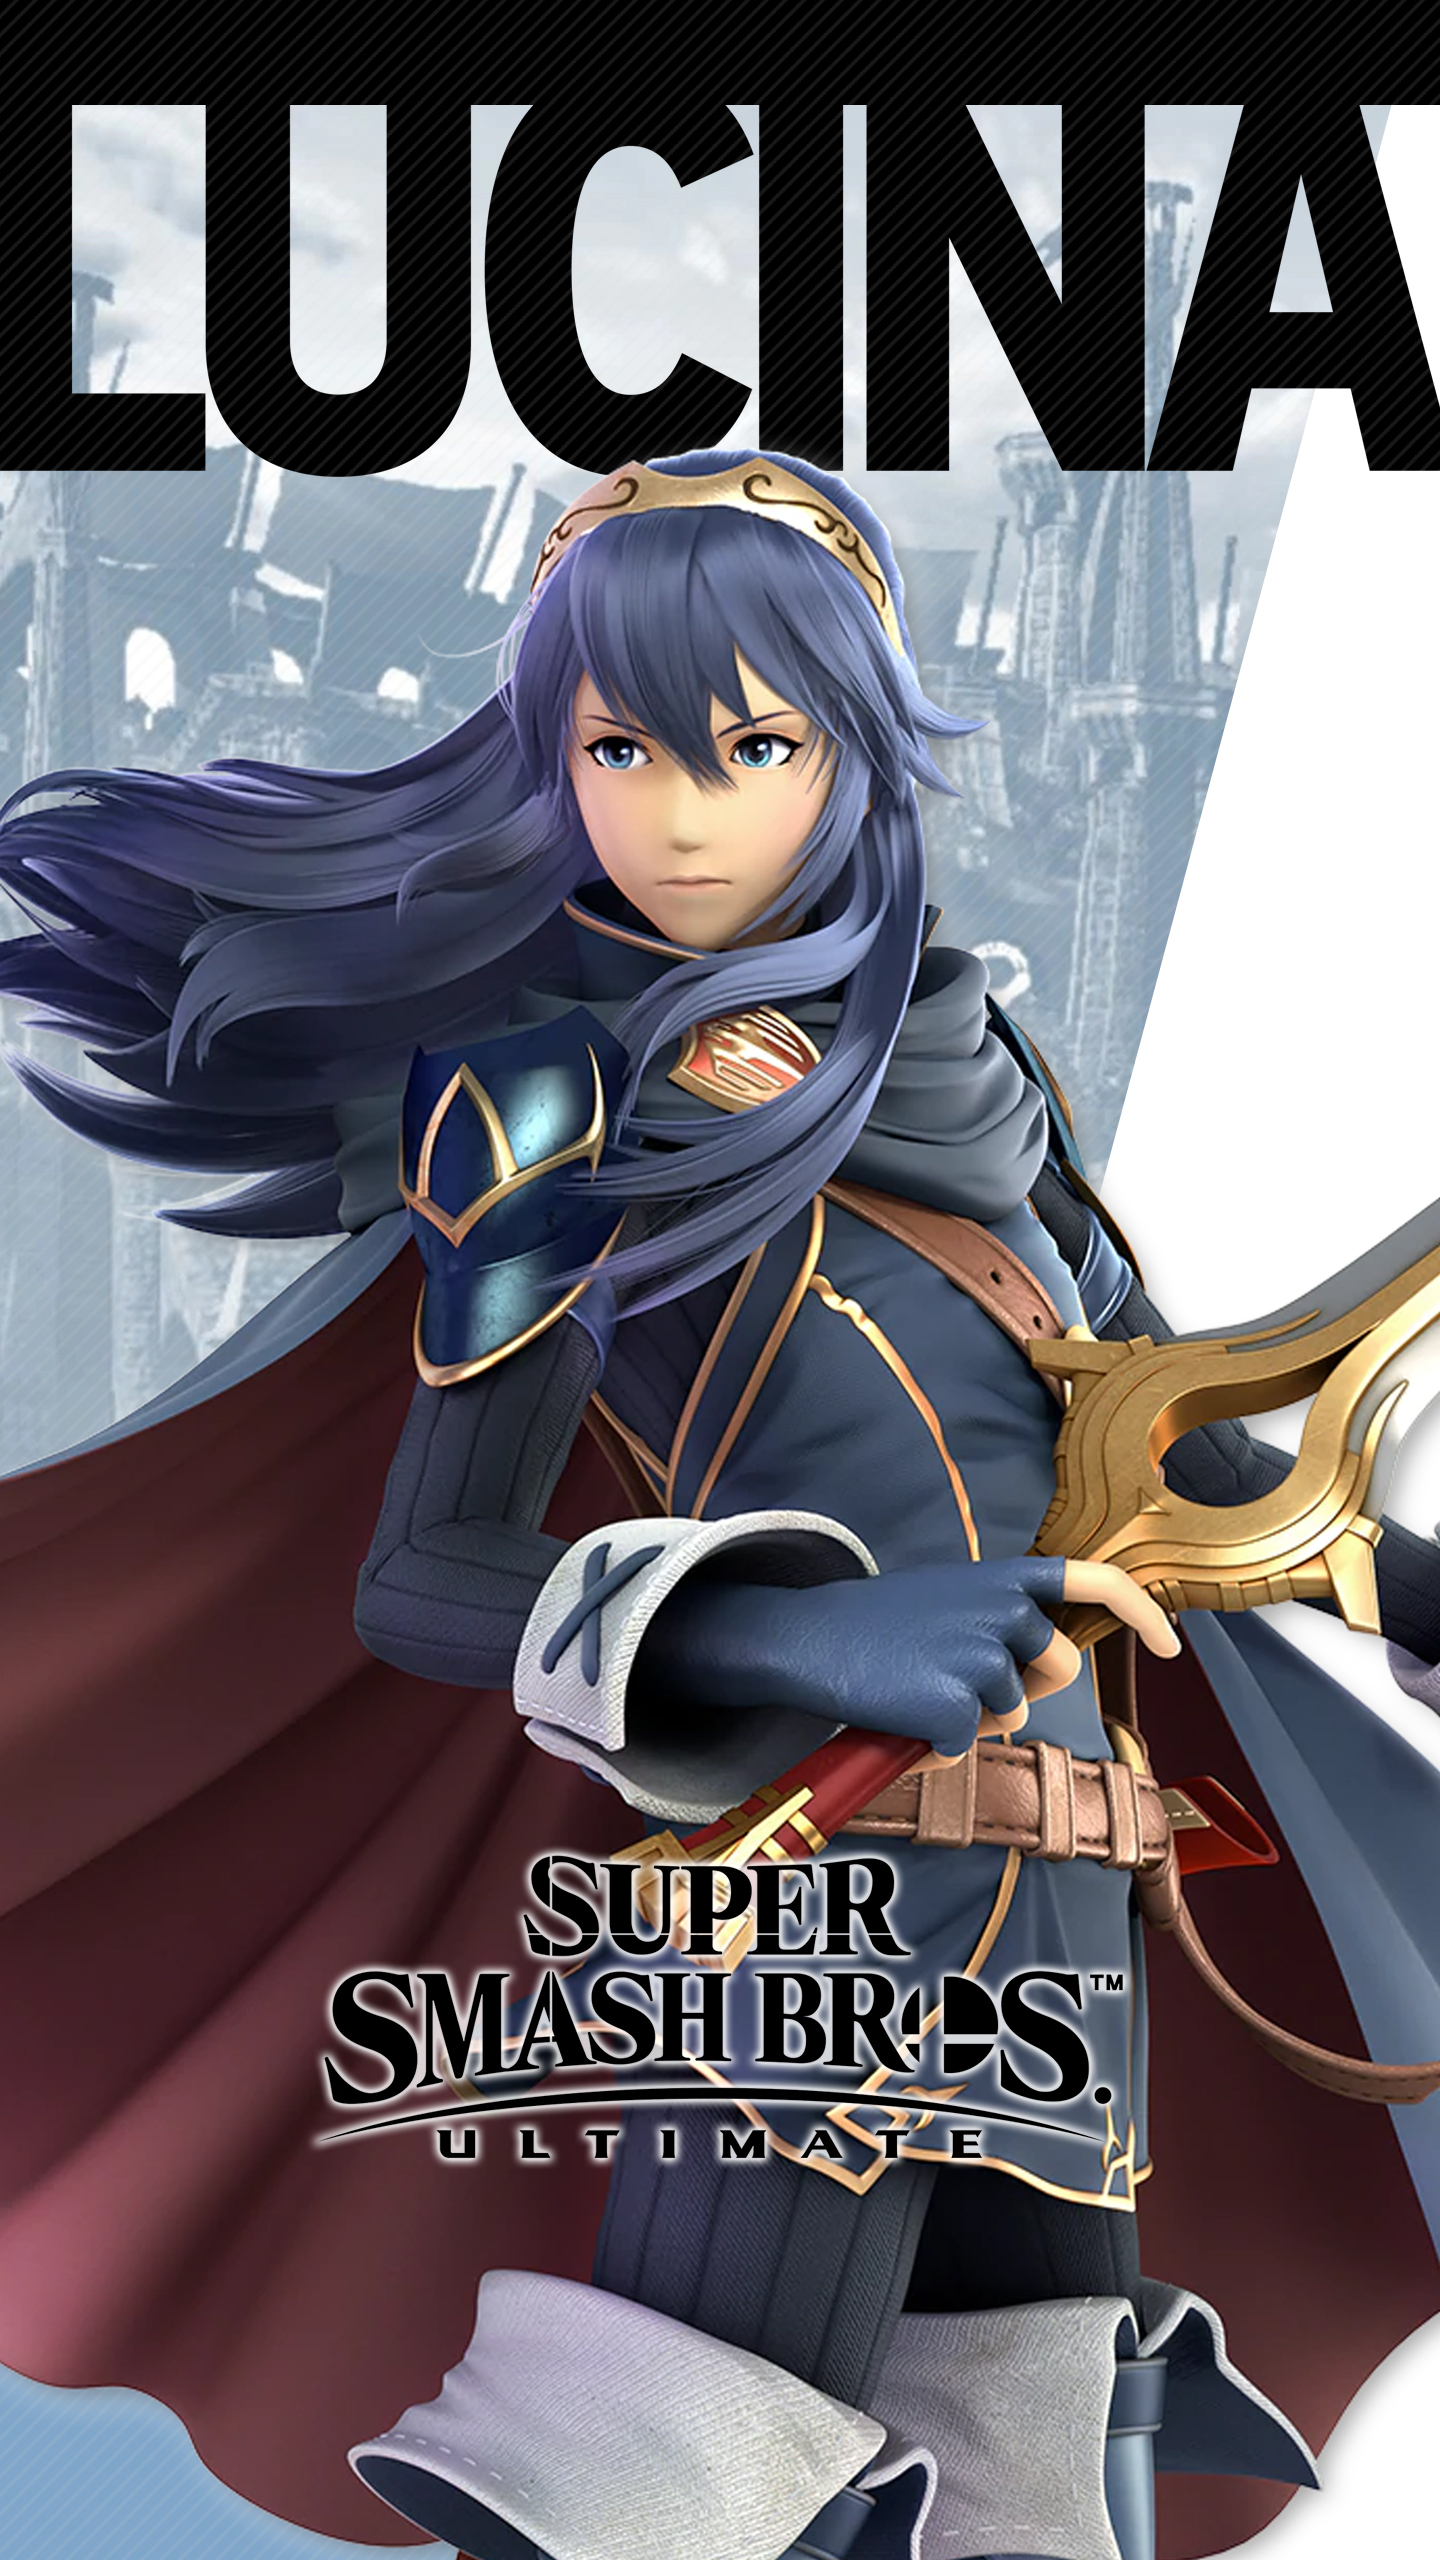 Super Smash Bros Ultimate Lucina Wallpapers Cat With Monocle